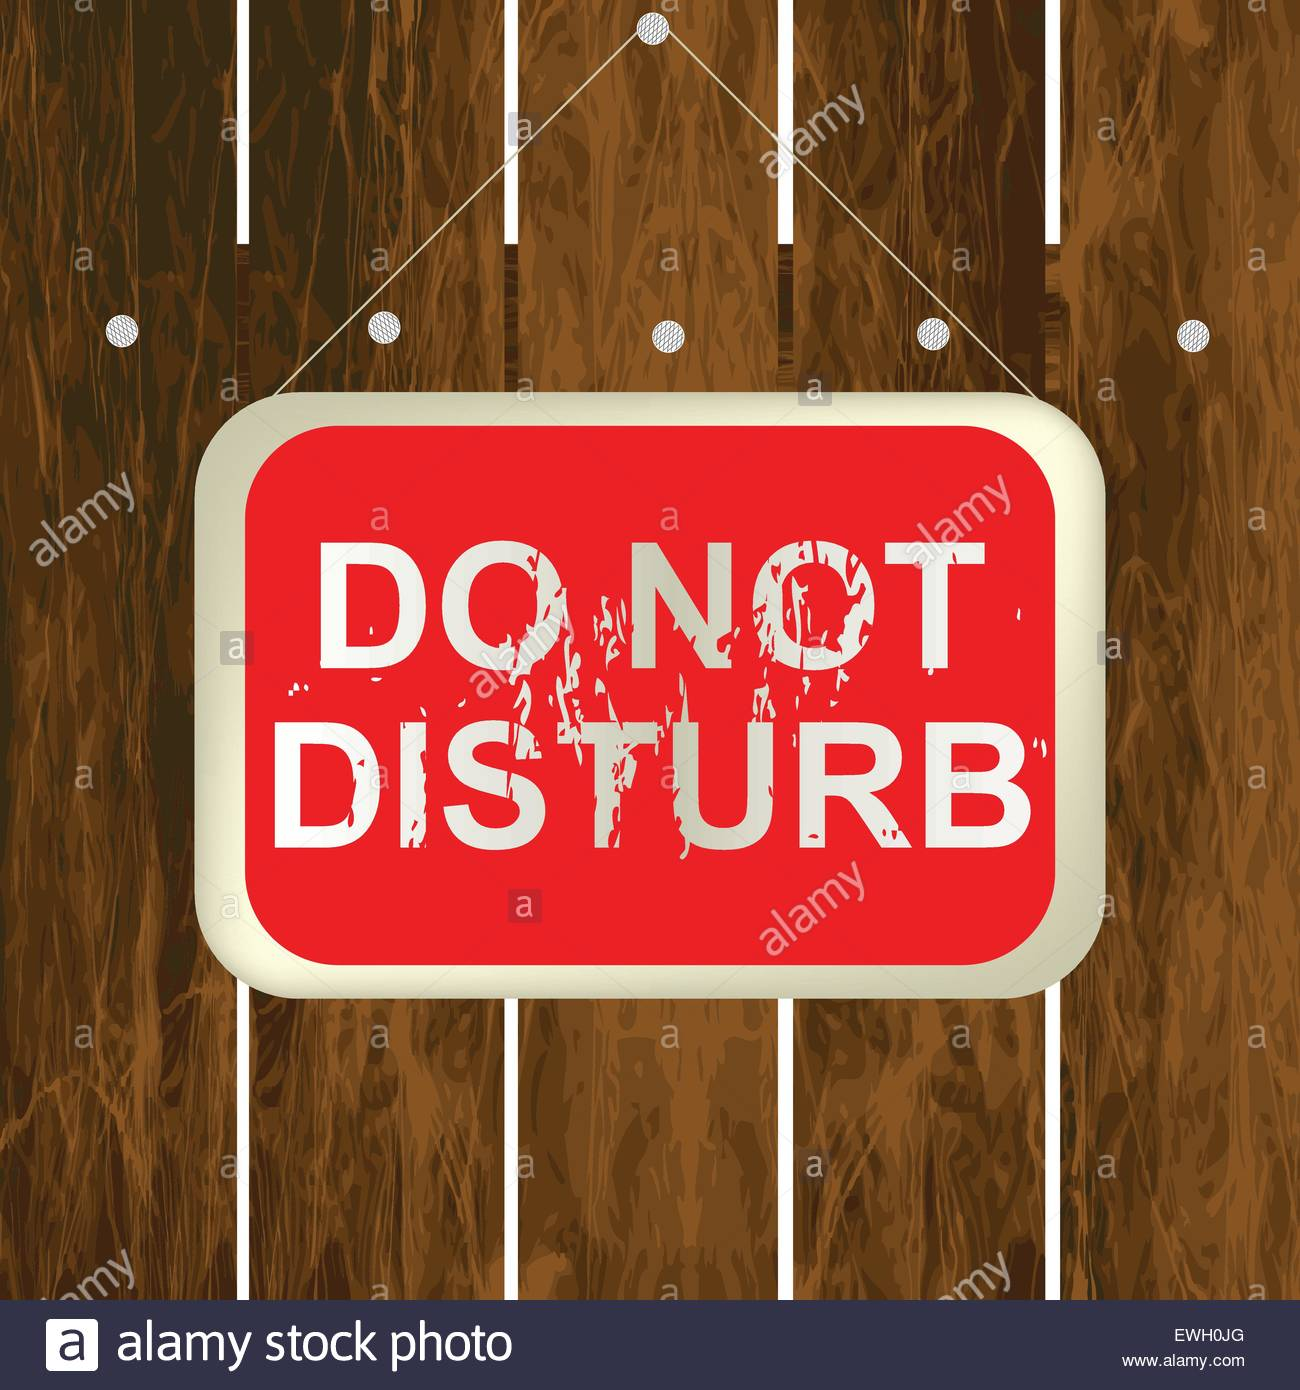 DO NOT DISTURB sign hanging on a wooden fence - Stock Vector